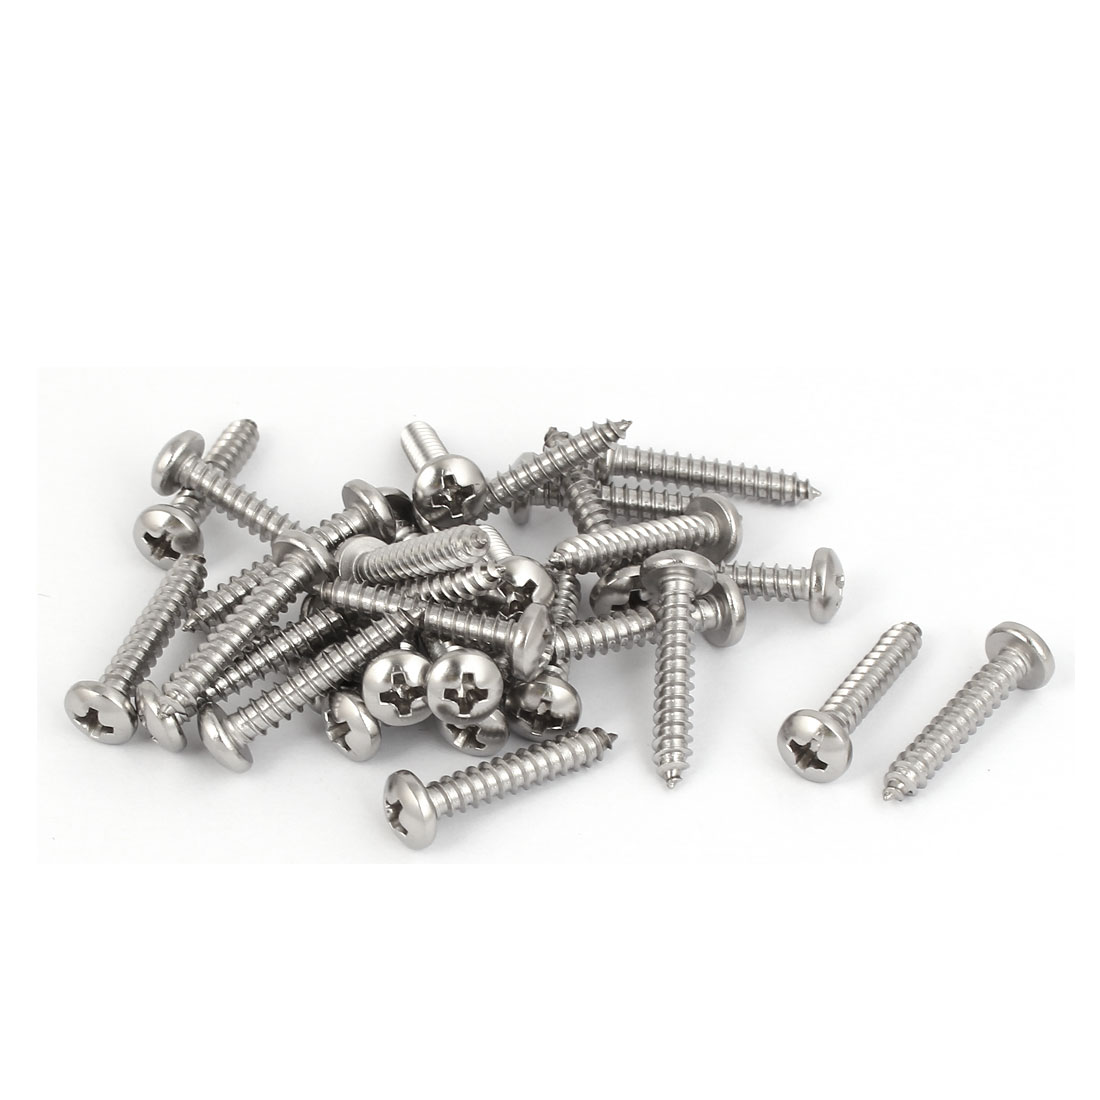 M3.9x22mm 316 Stainless Steel Phillips Round Pan Head Self Tapping Screws 30pcs